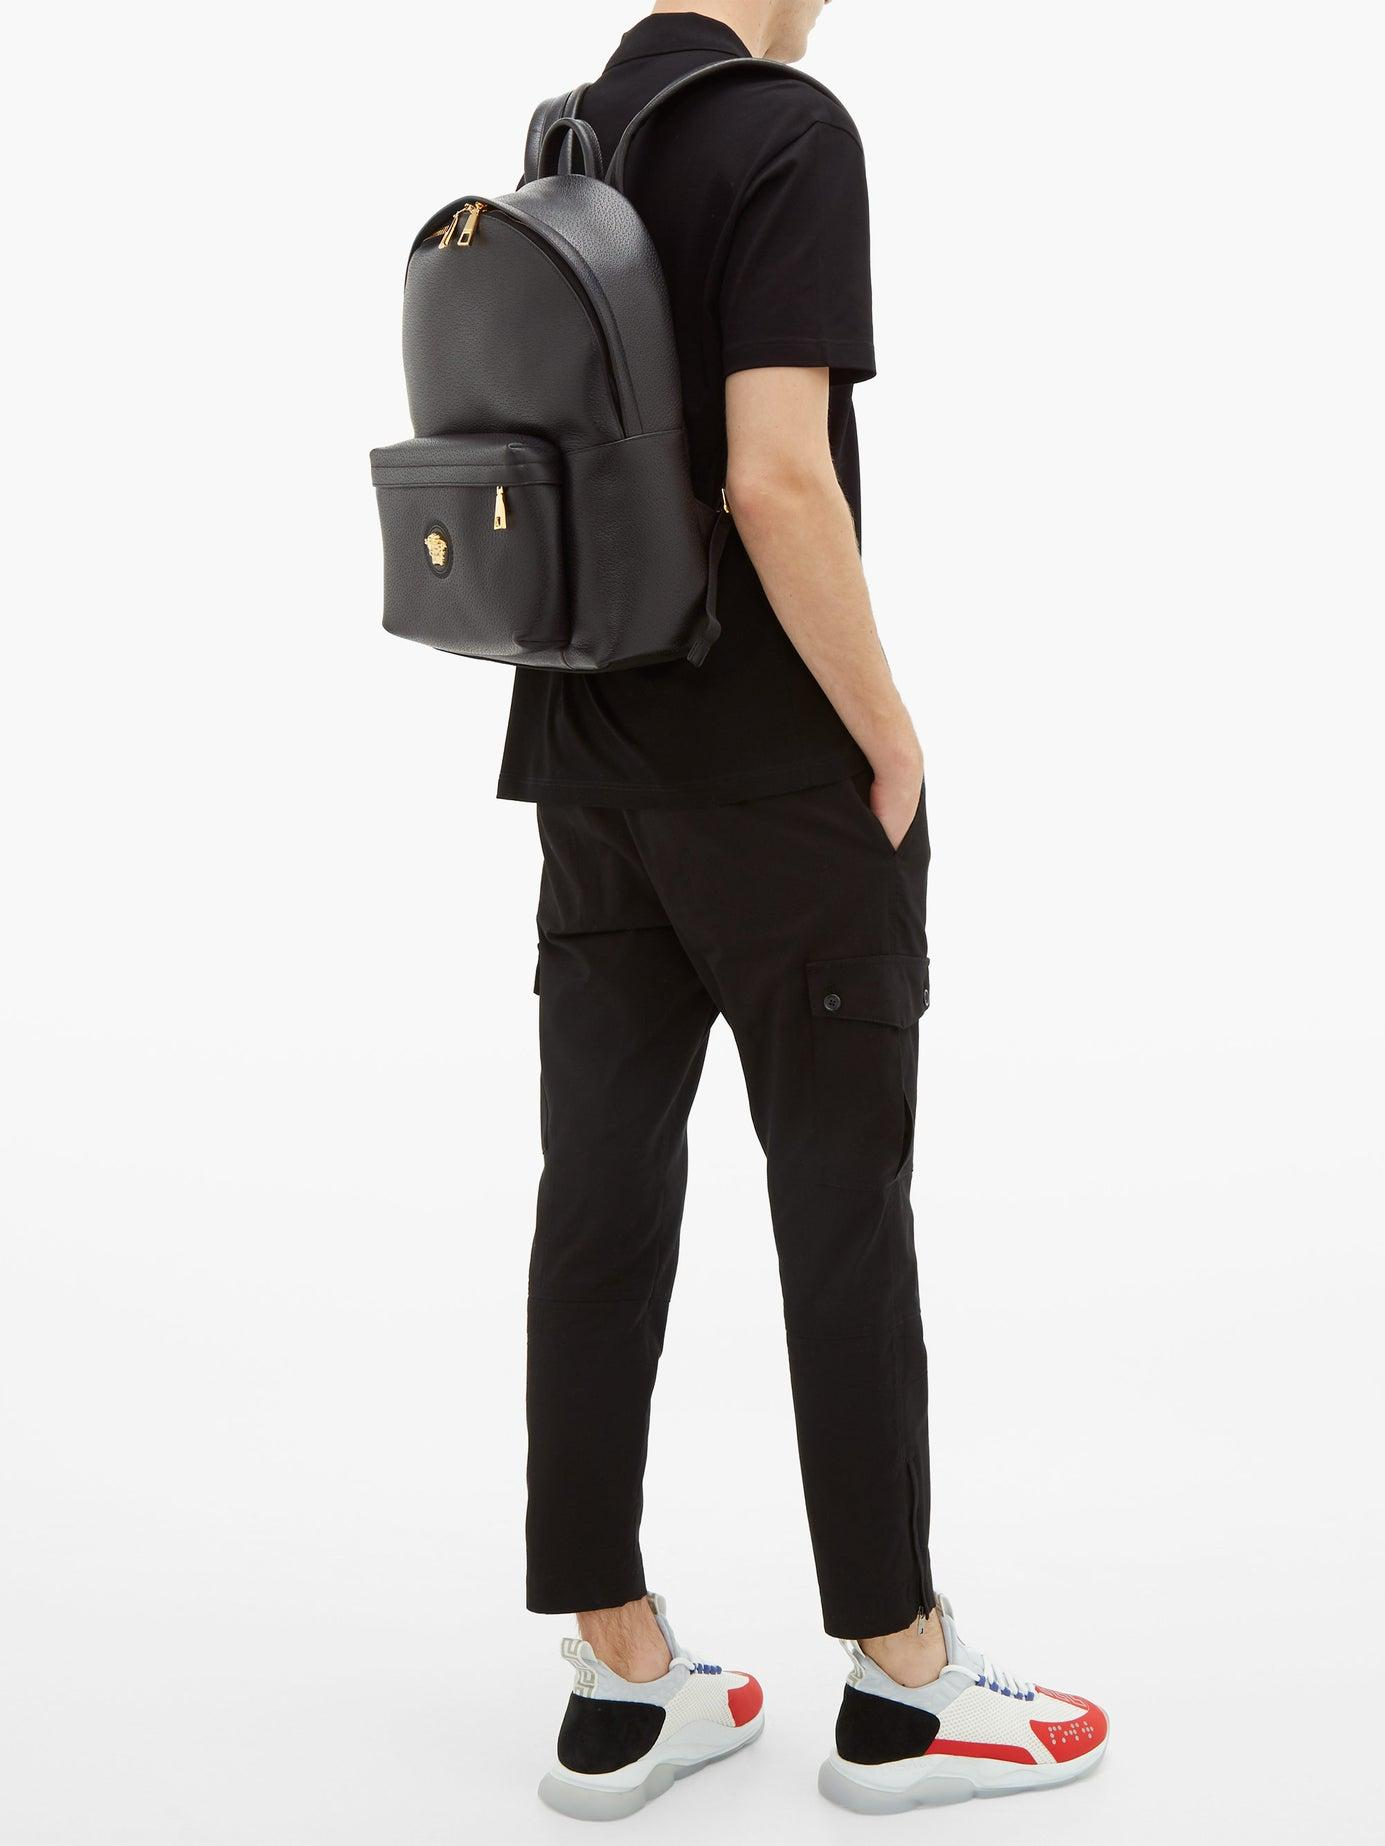 a8dde8a6375 Versace Medusa Head Leather Backpack in Black for Men - Lyst